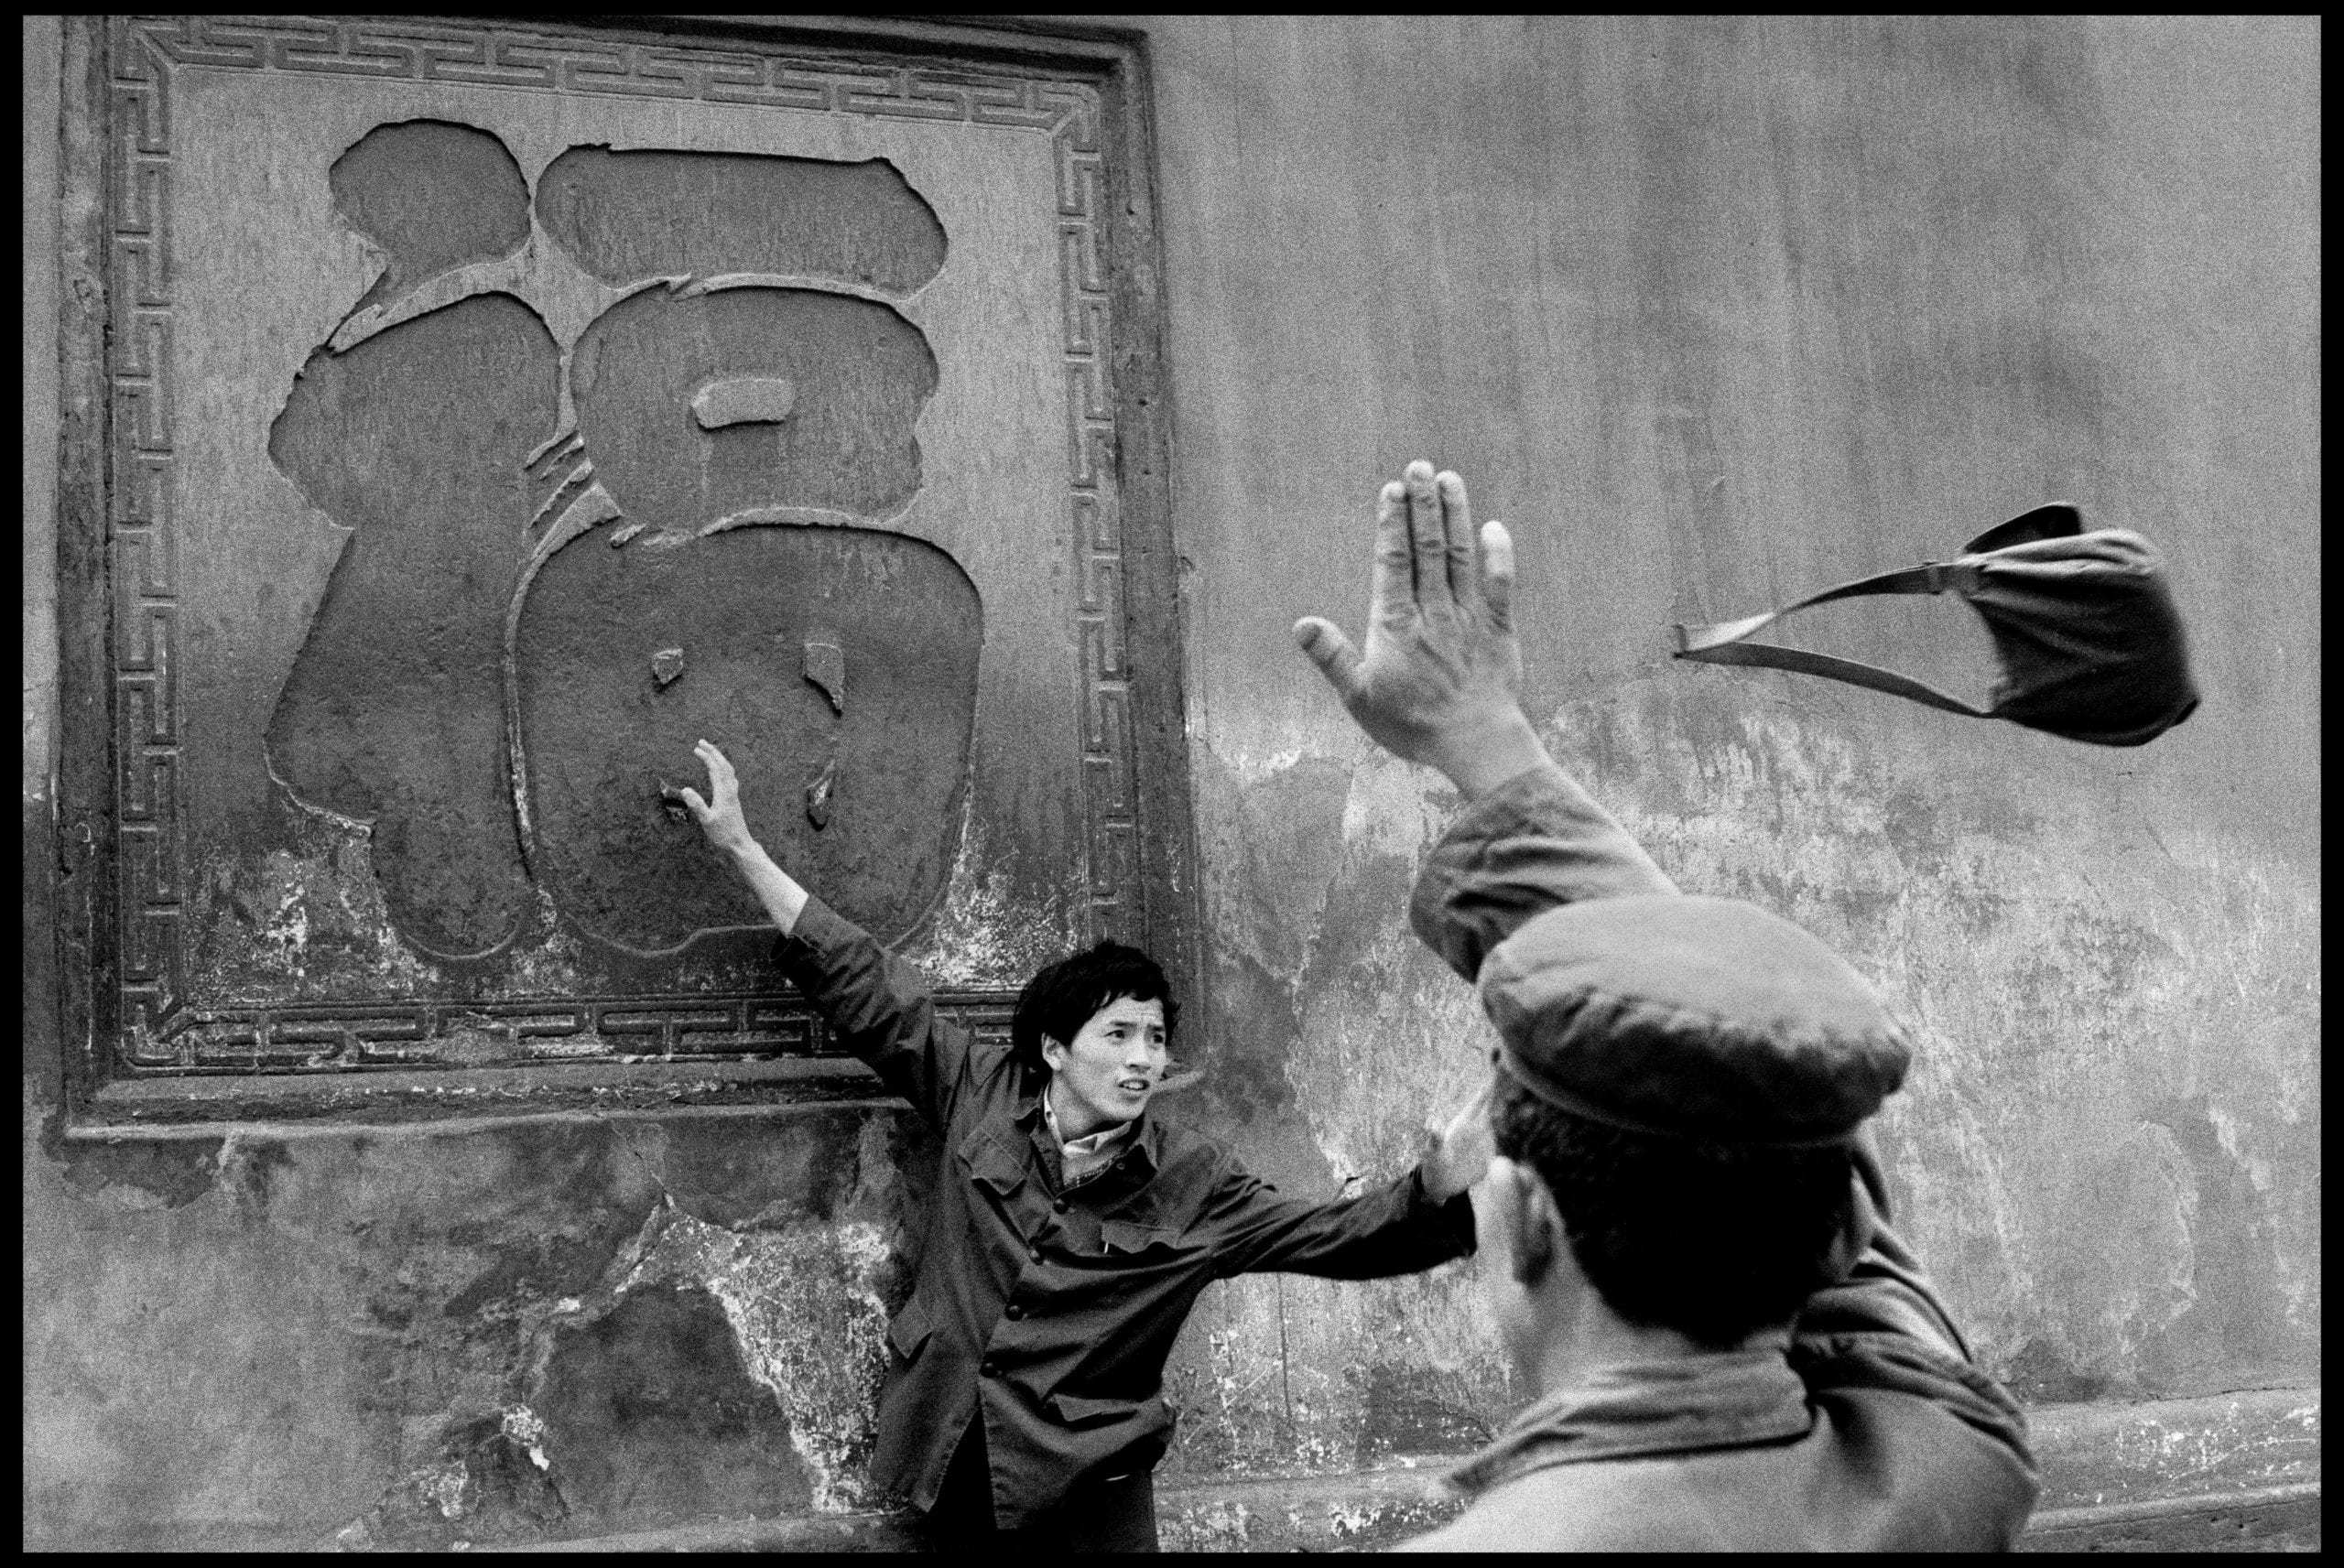 CHINA. Province of Sichuan. Xindu. Monastery of BAO GUANG (Divine Light). Buddhist temple. On the wall: inscription symbolizing happiness, which the visitors, with their eyes shut, try to touch in the center in order to gain happiness. Friday 27th April 1984.